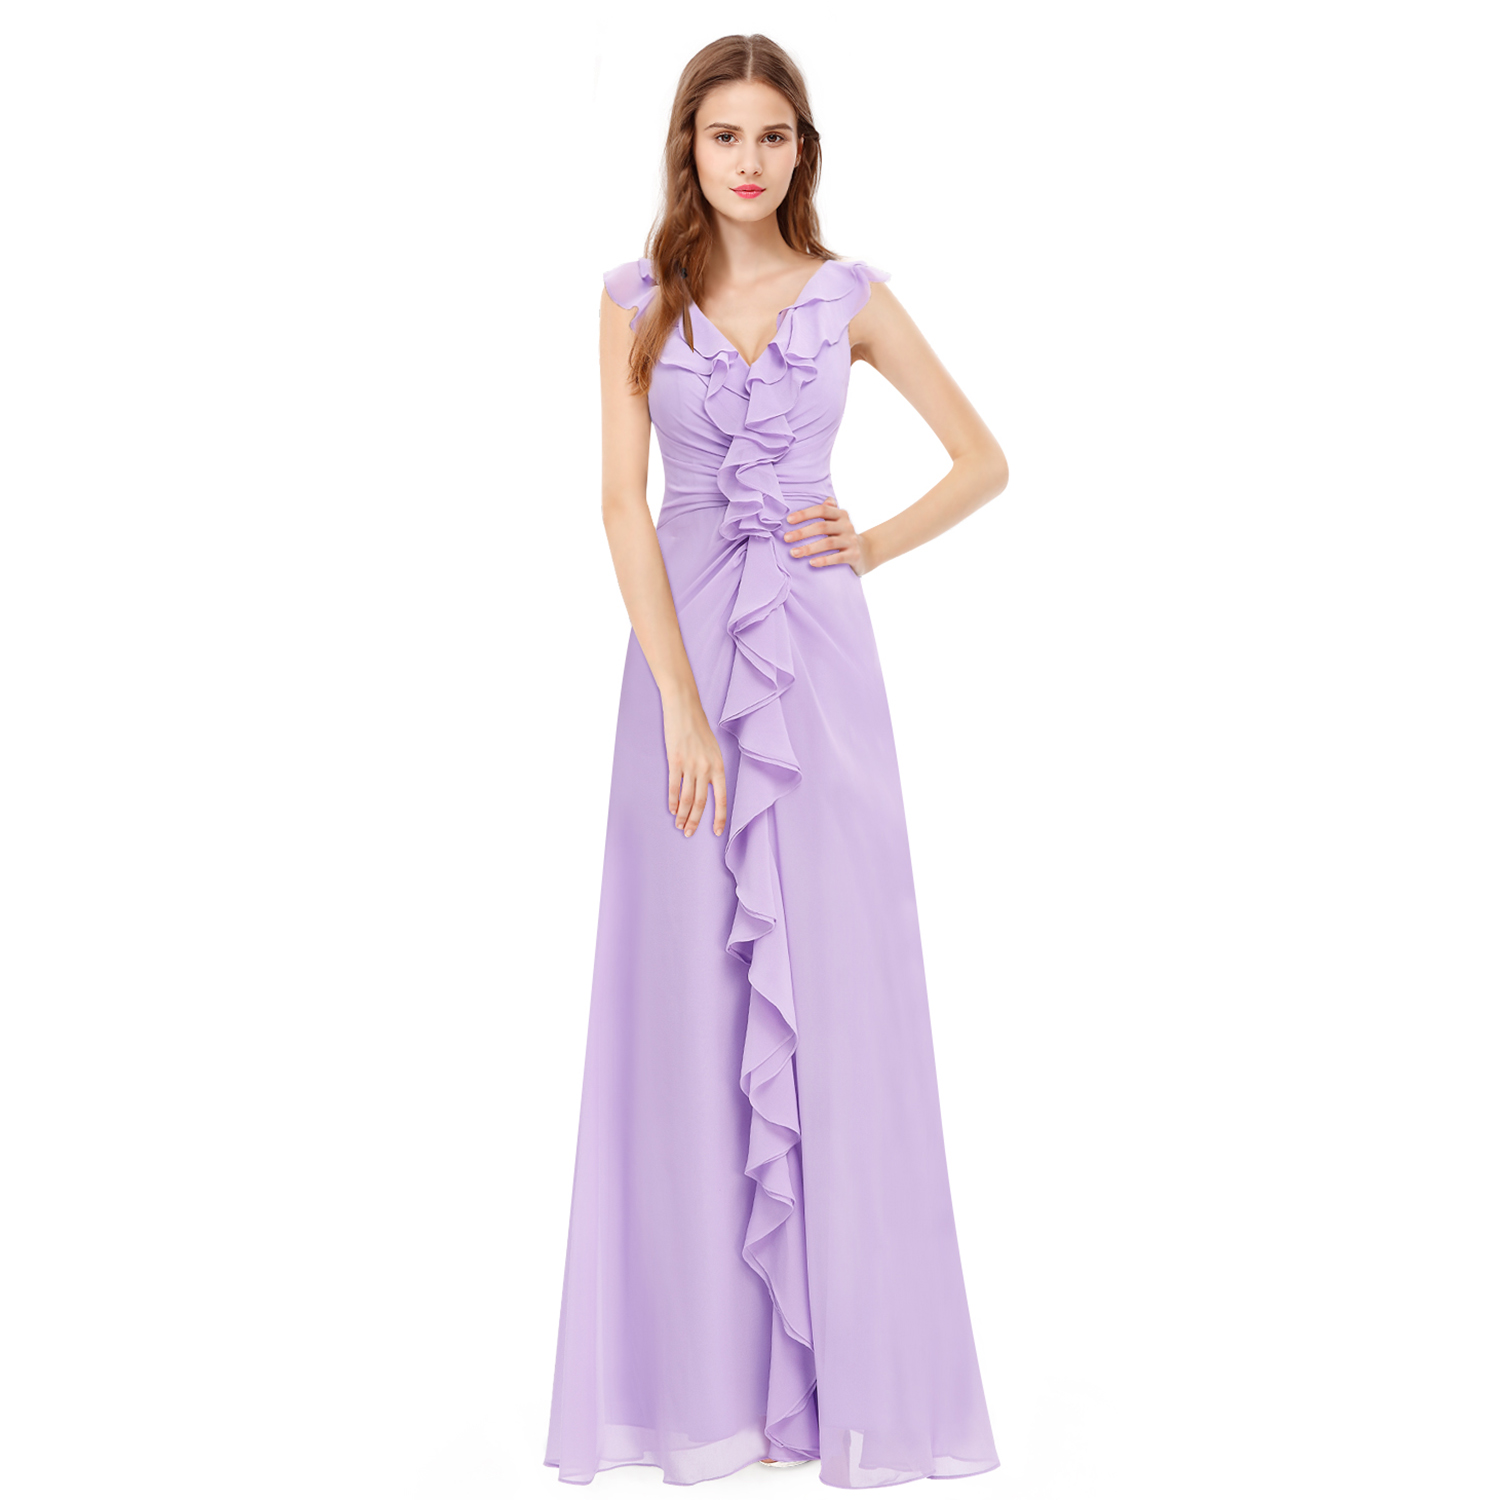 Bridesmaid Formal Ball Gown Party Light Purple Dress Ever ...